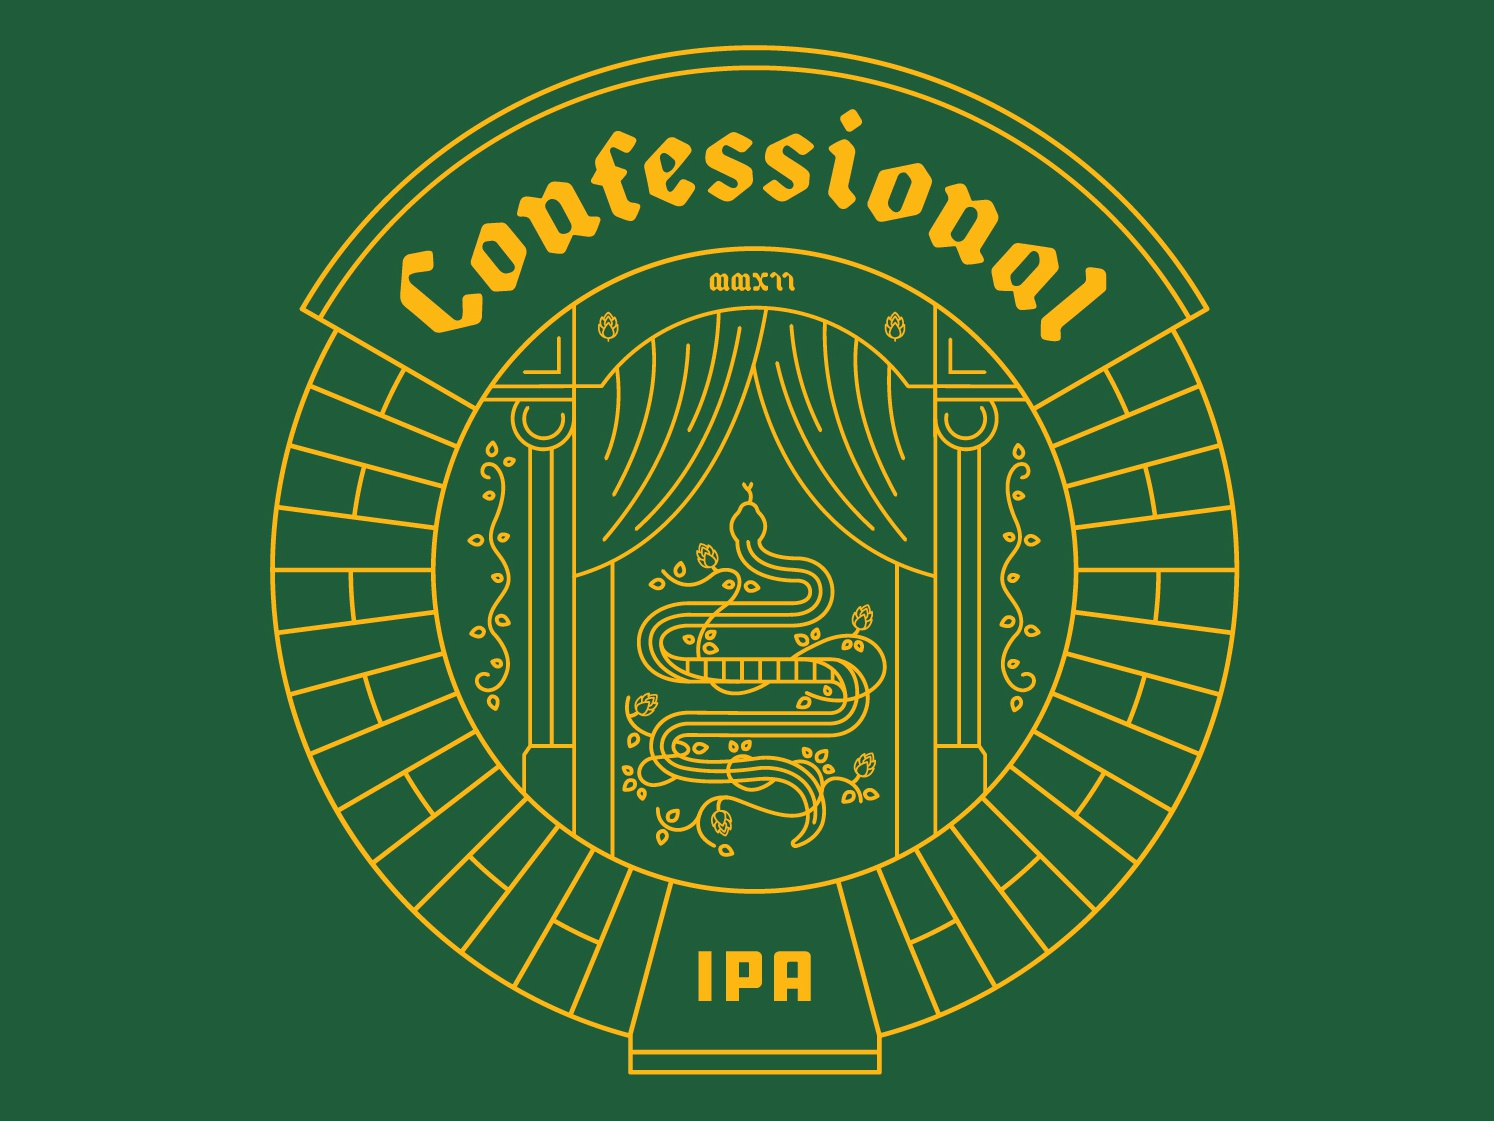 St. Joseph Brewery Confessional IPA identity branding identity branding concept logo design brand design vector branding concept snake illustration serpent coaster beer ipa